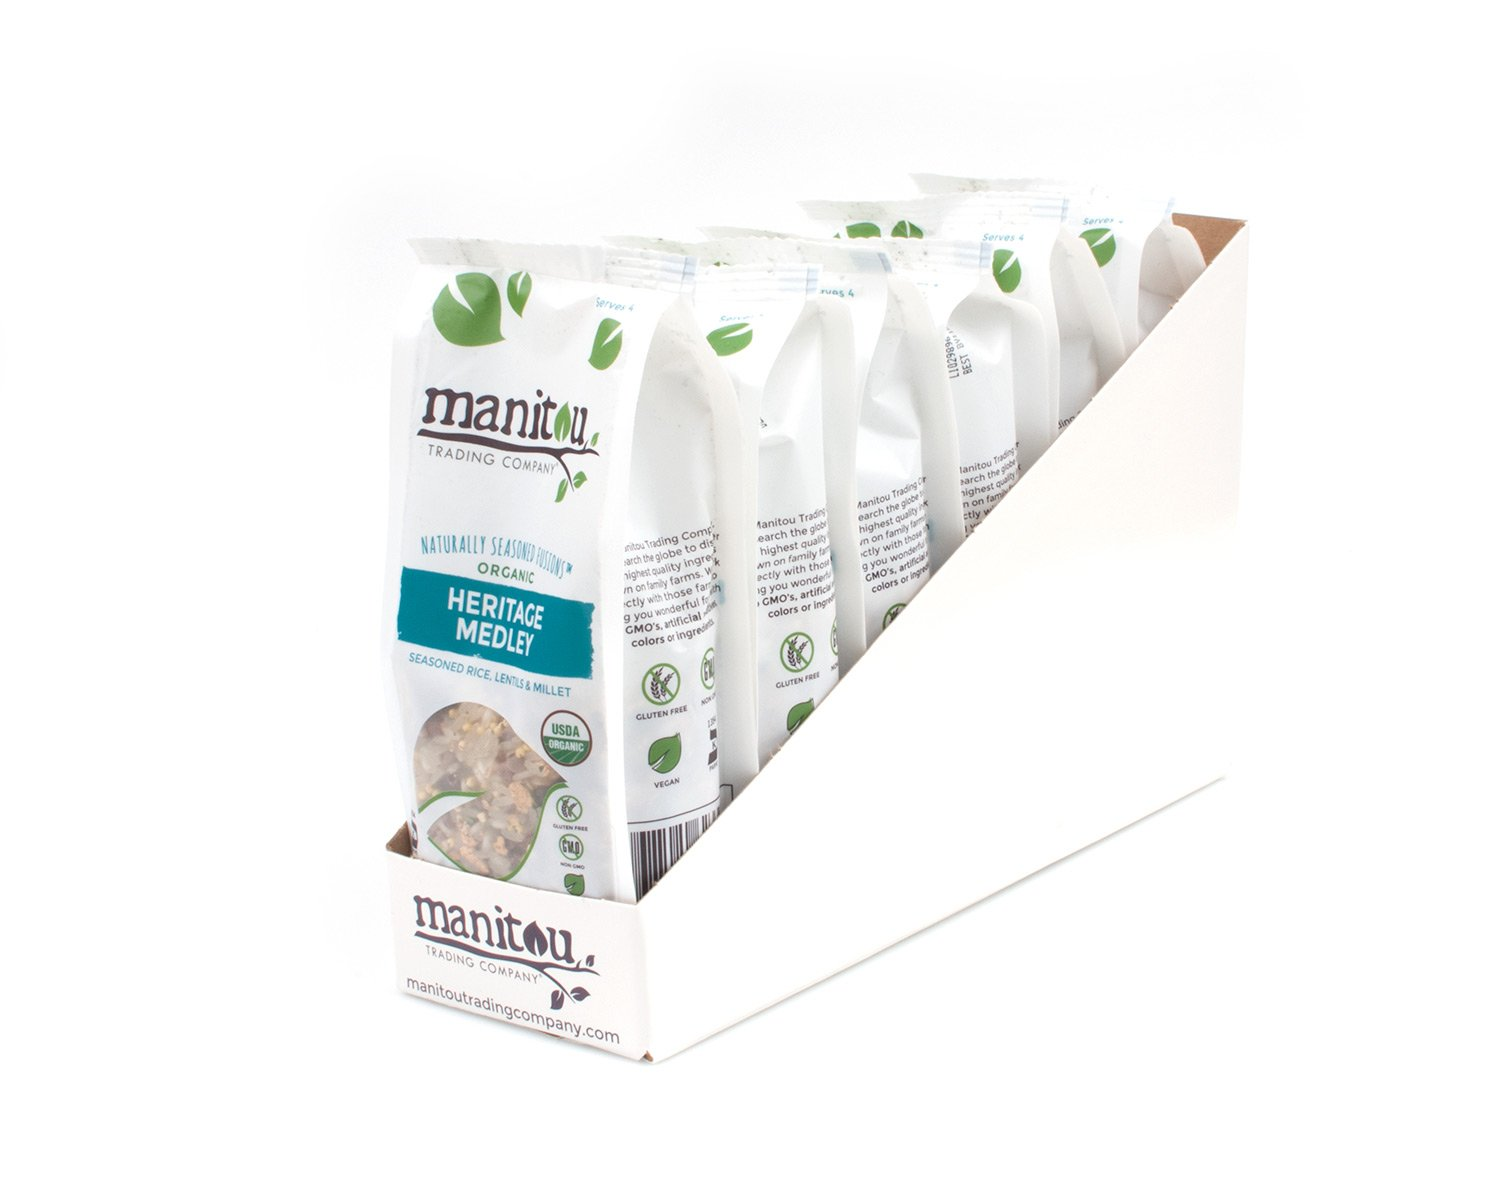 Organic Heritage Medley by Manitou Trading Company, 6/7 Oz Pack Case